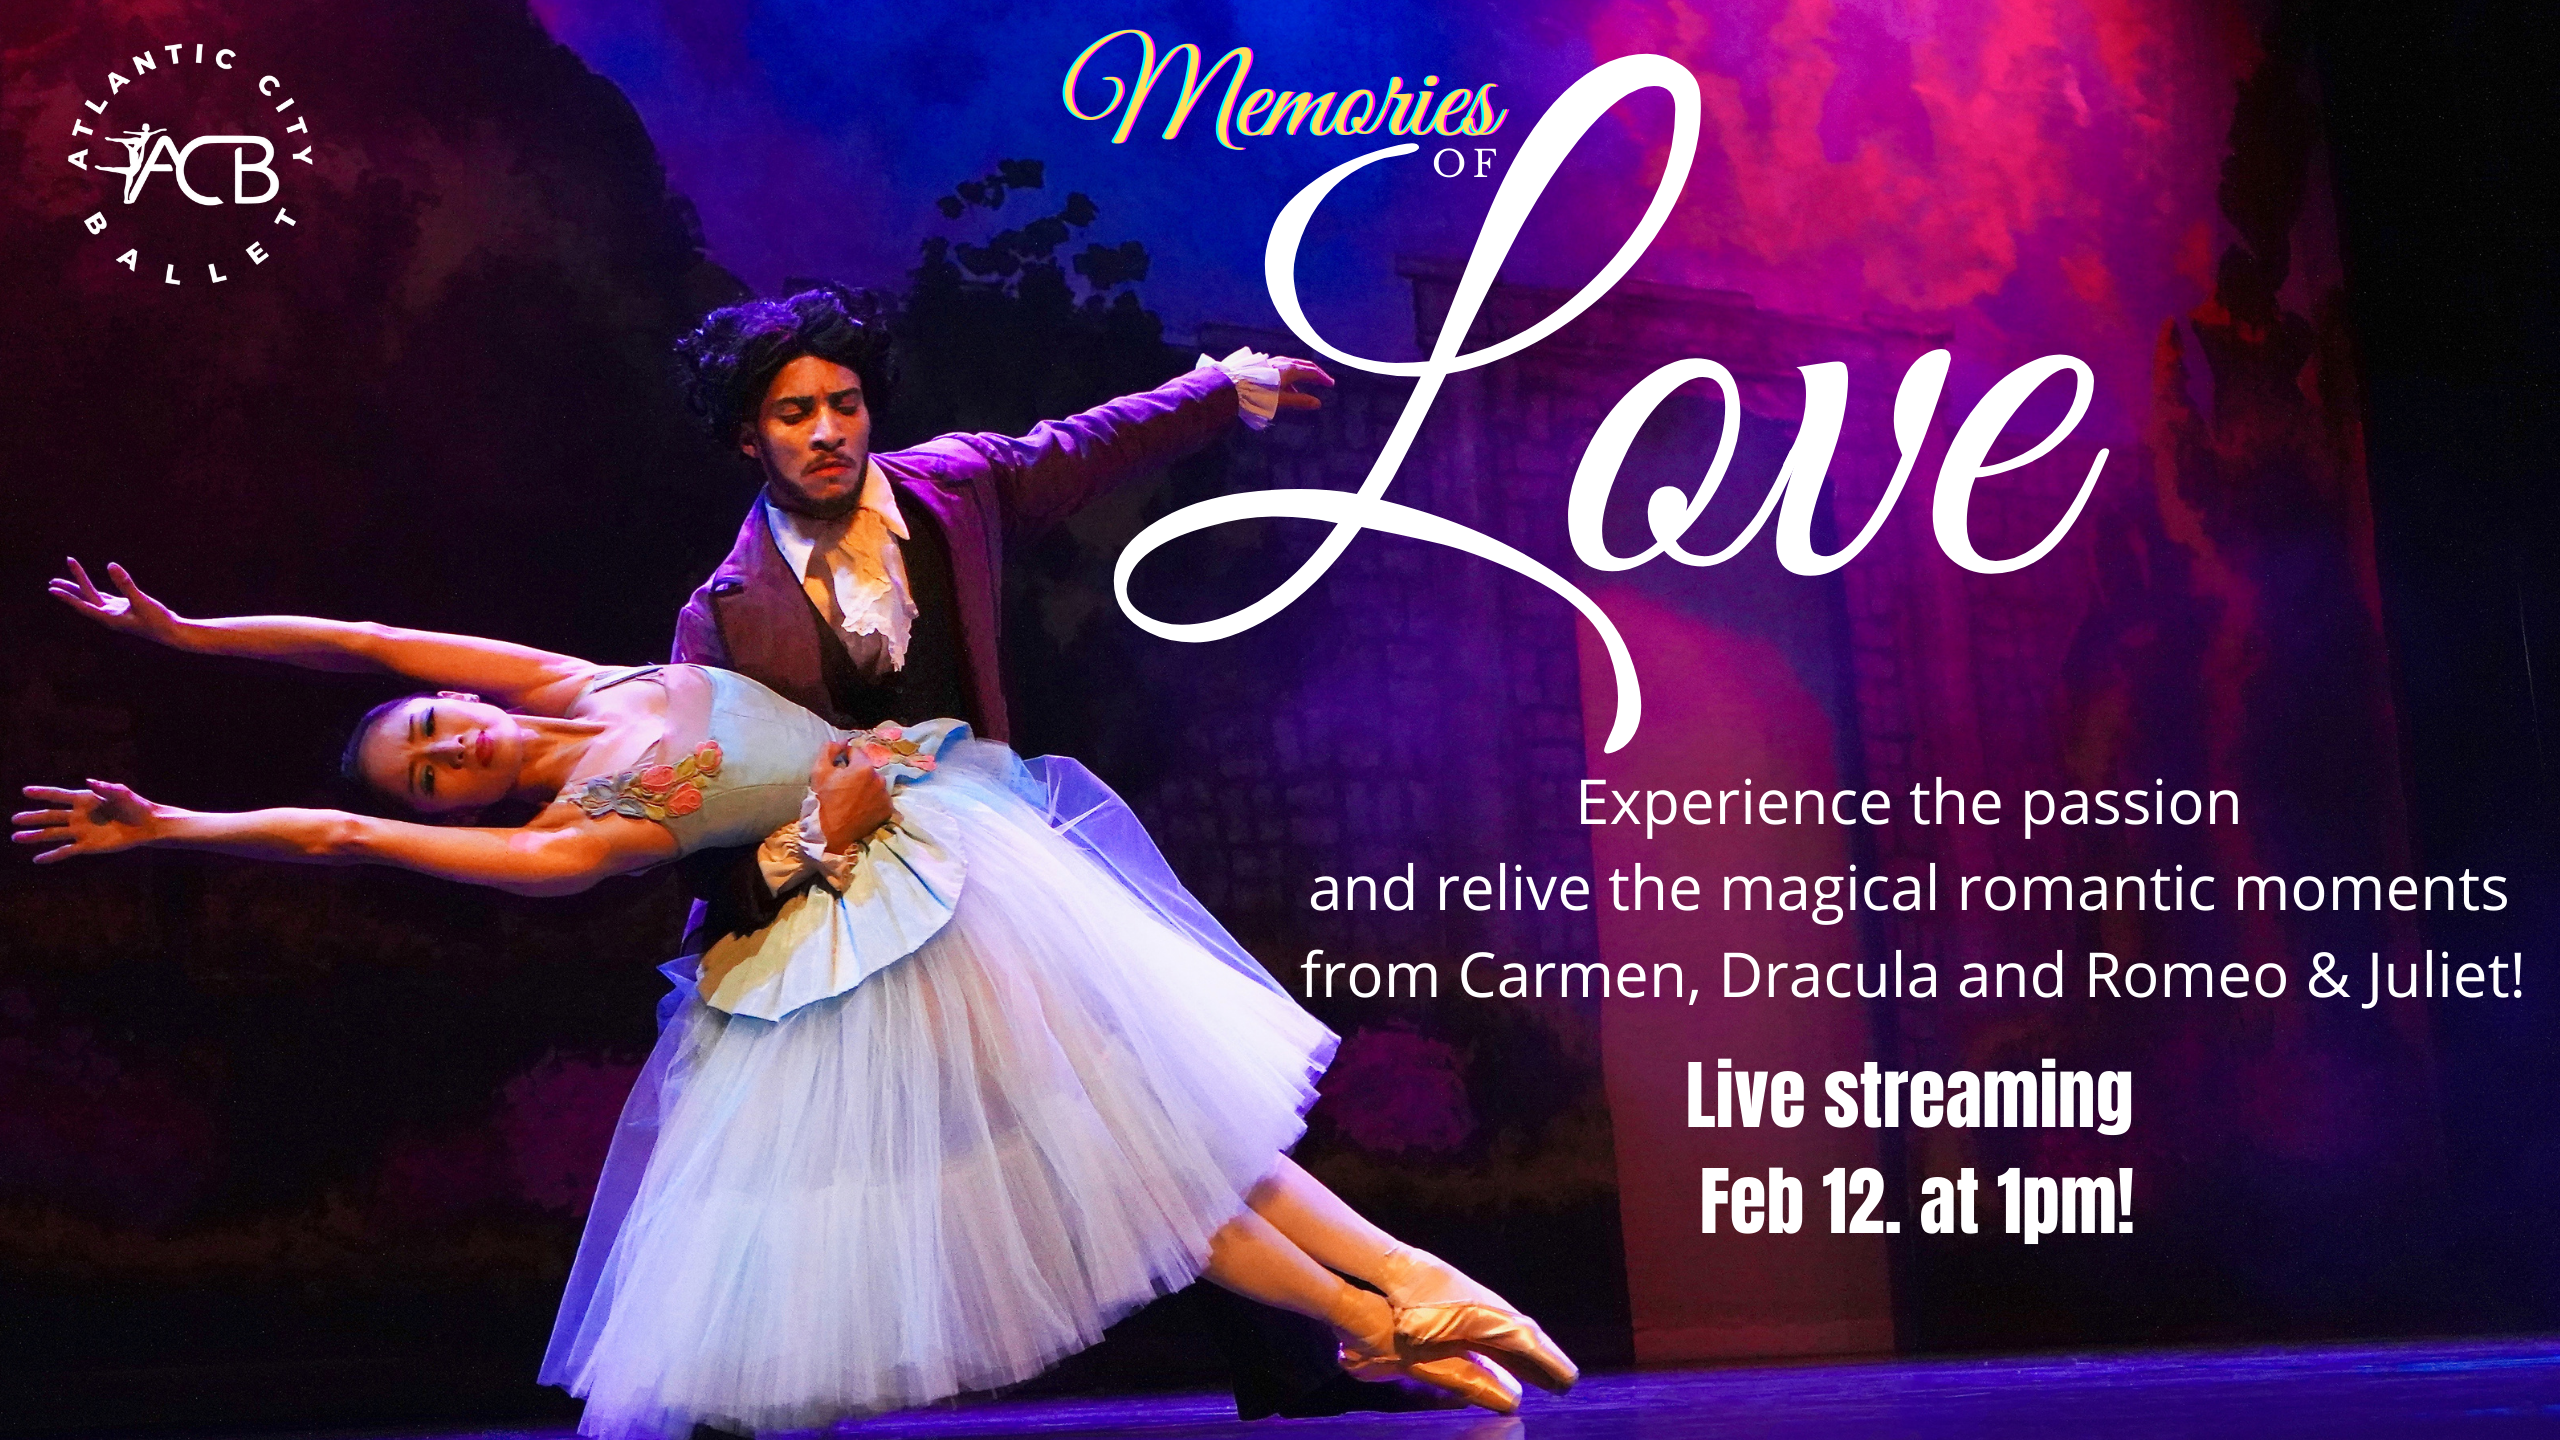 AC ballet memories of love flyer for website